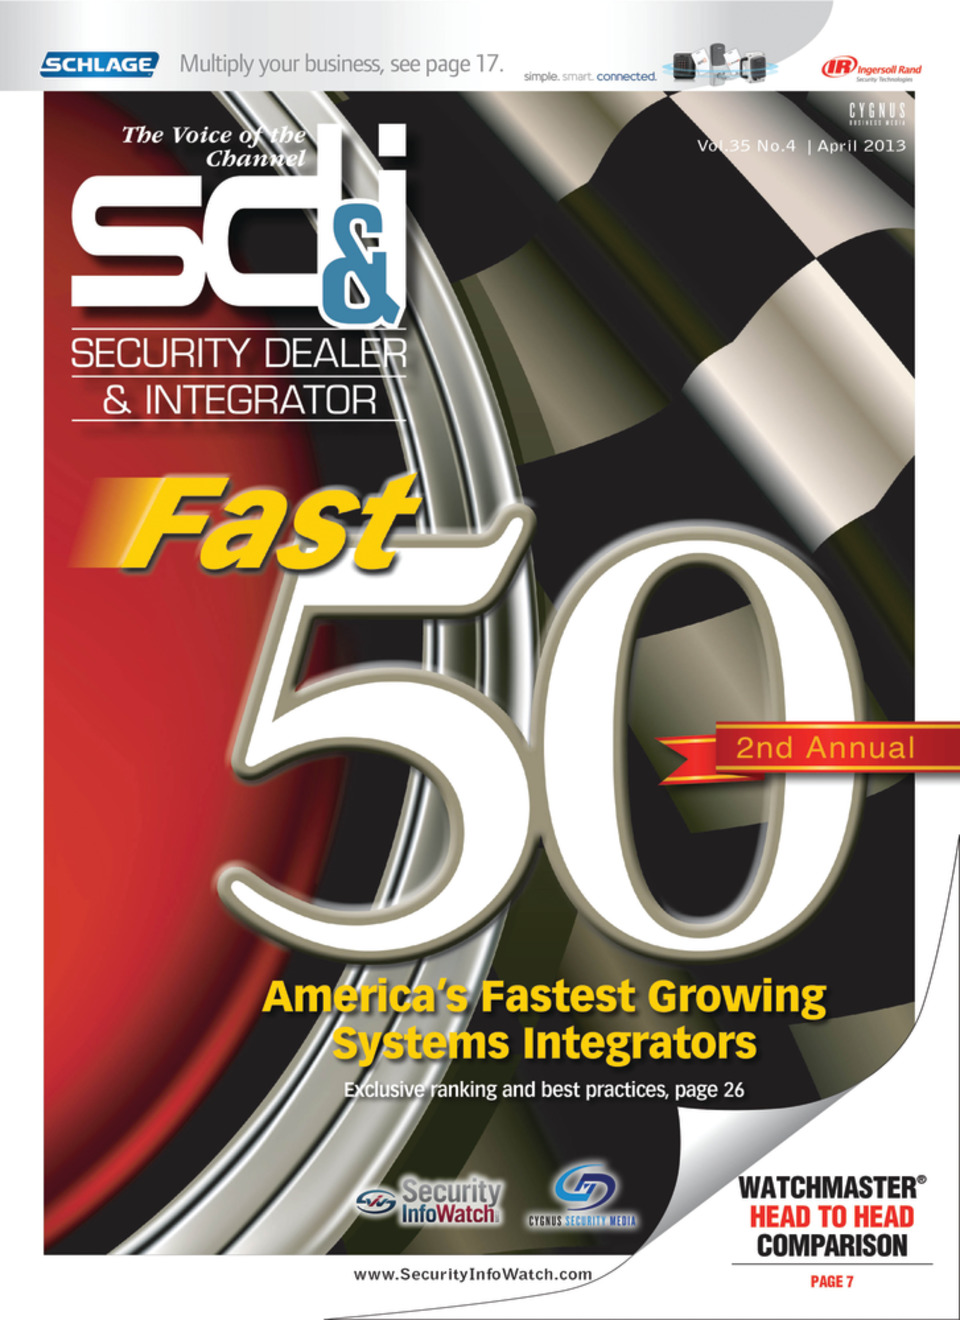 America's Fastest Growing Systems Integrators